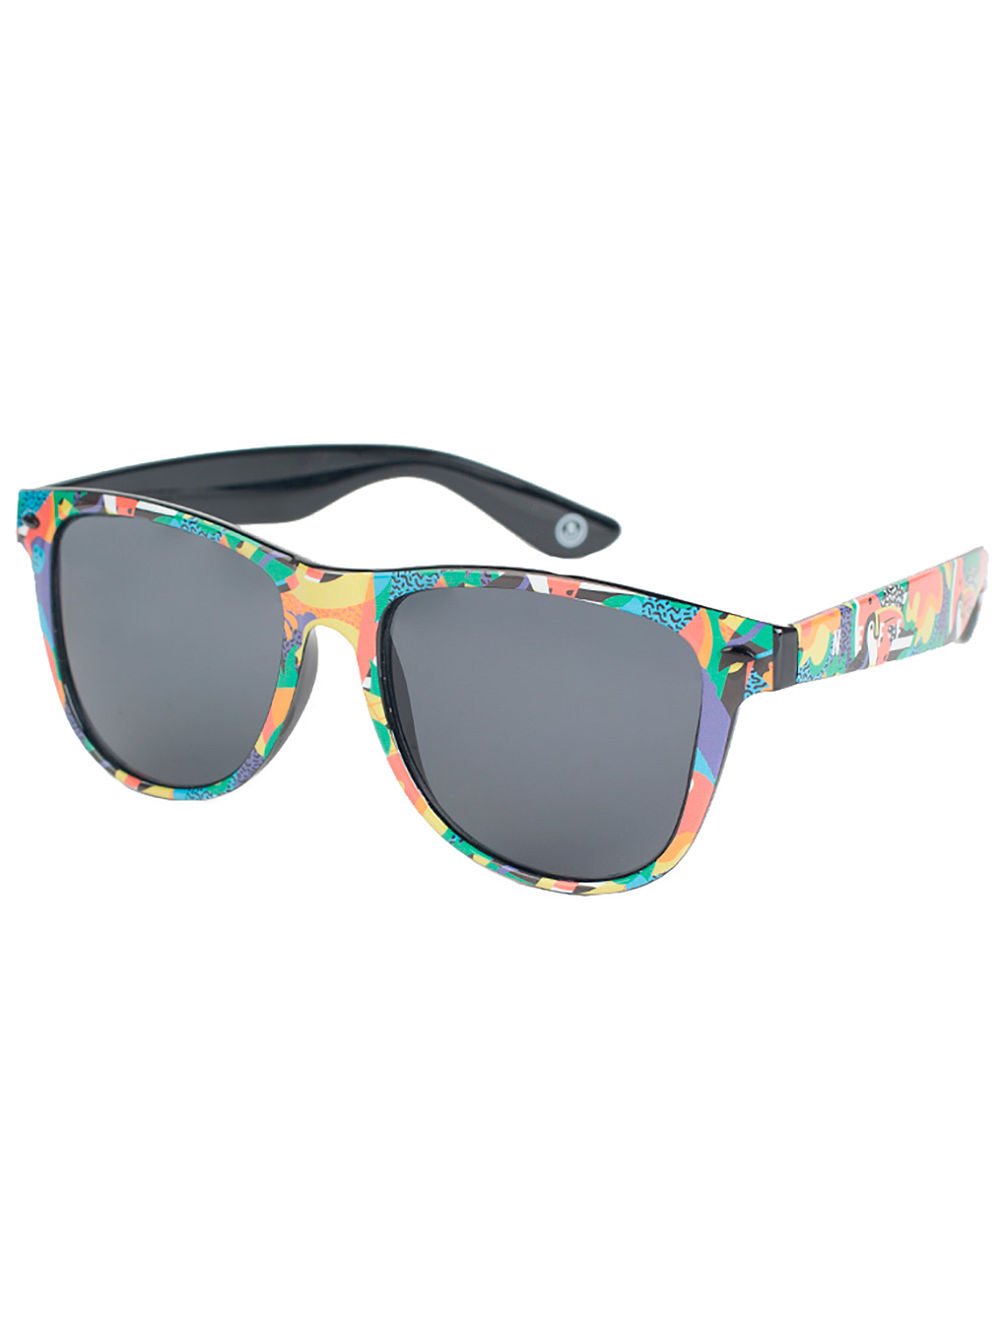 Daily Tropical Jungle Sonnenbrille